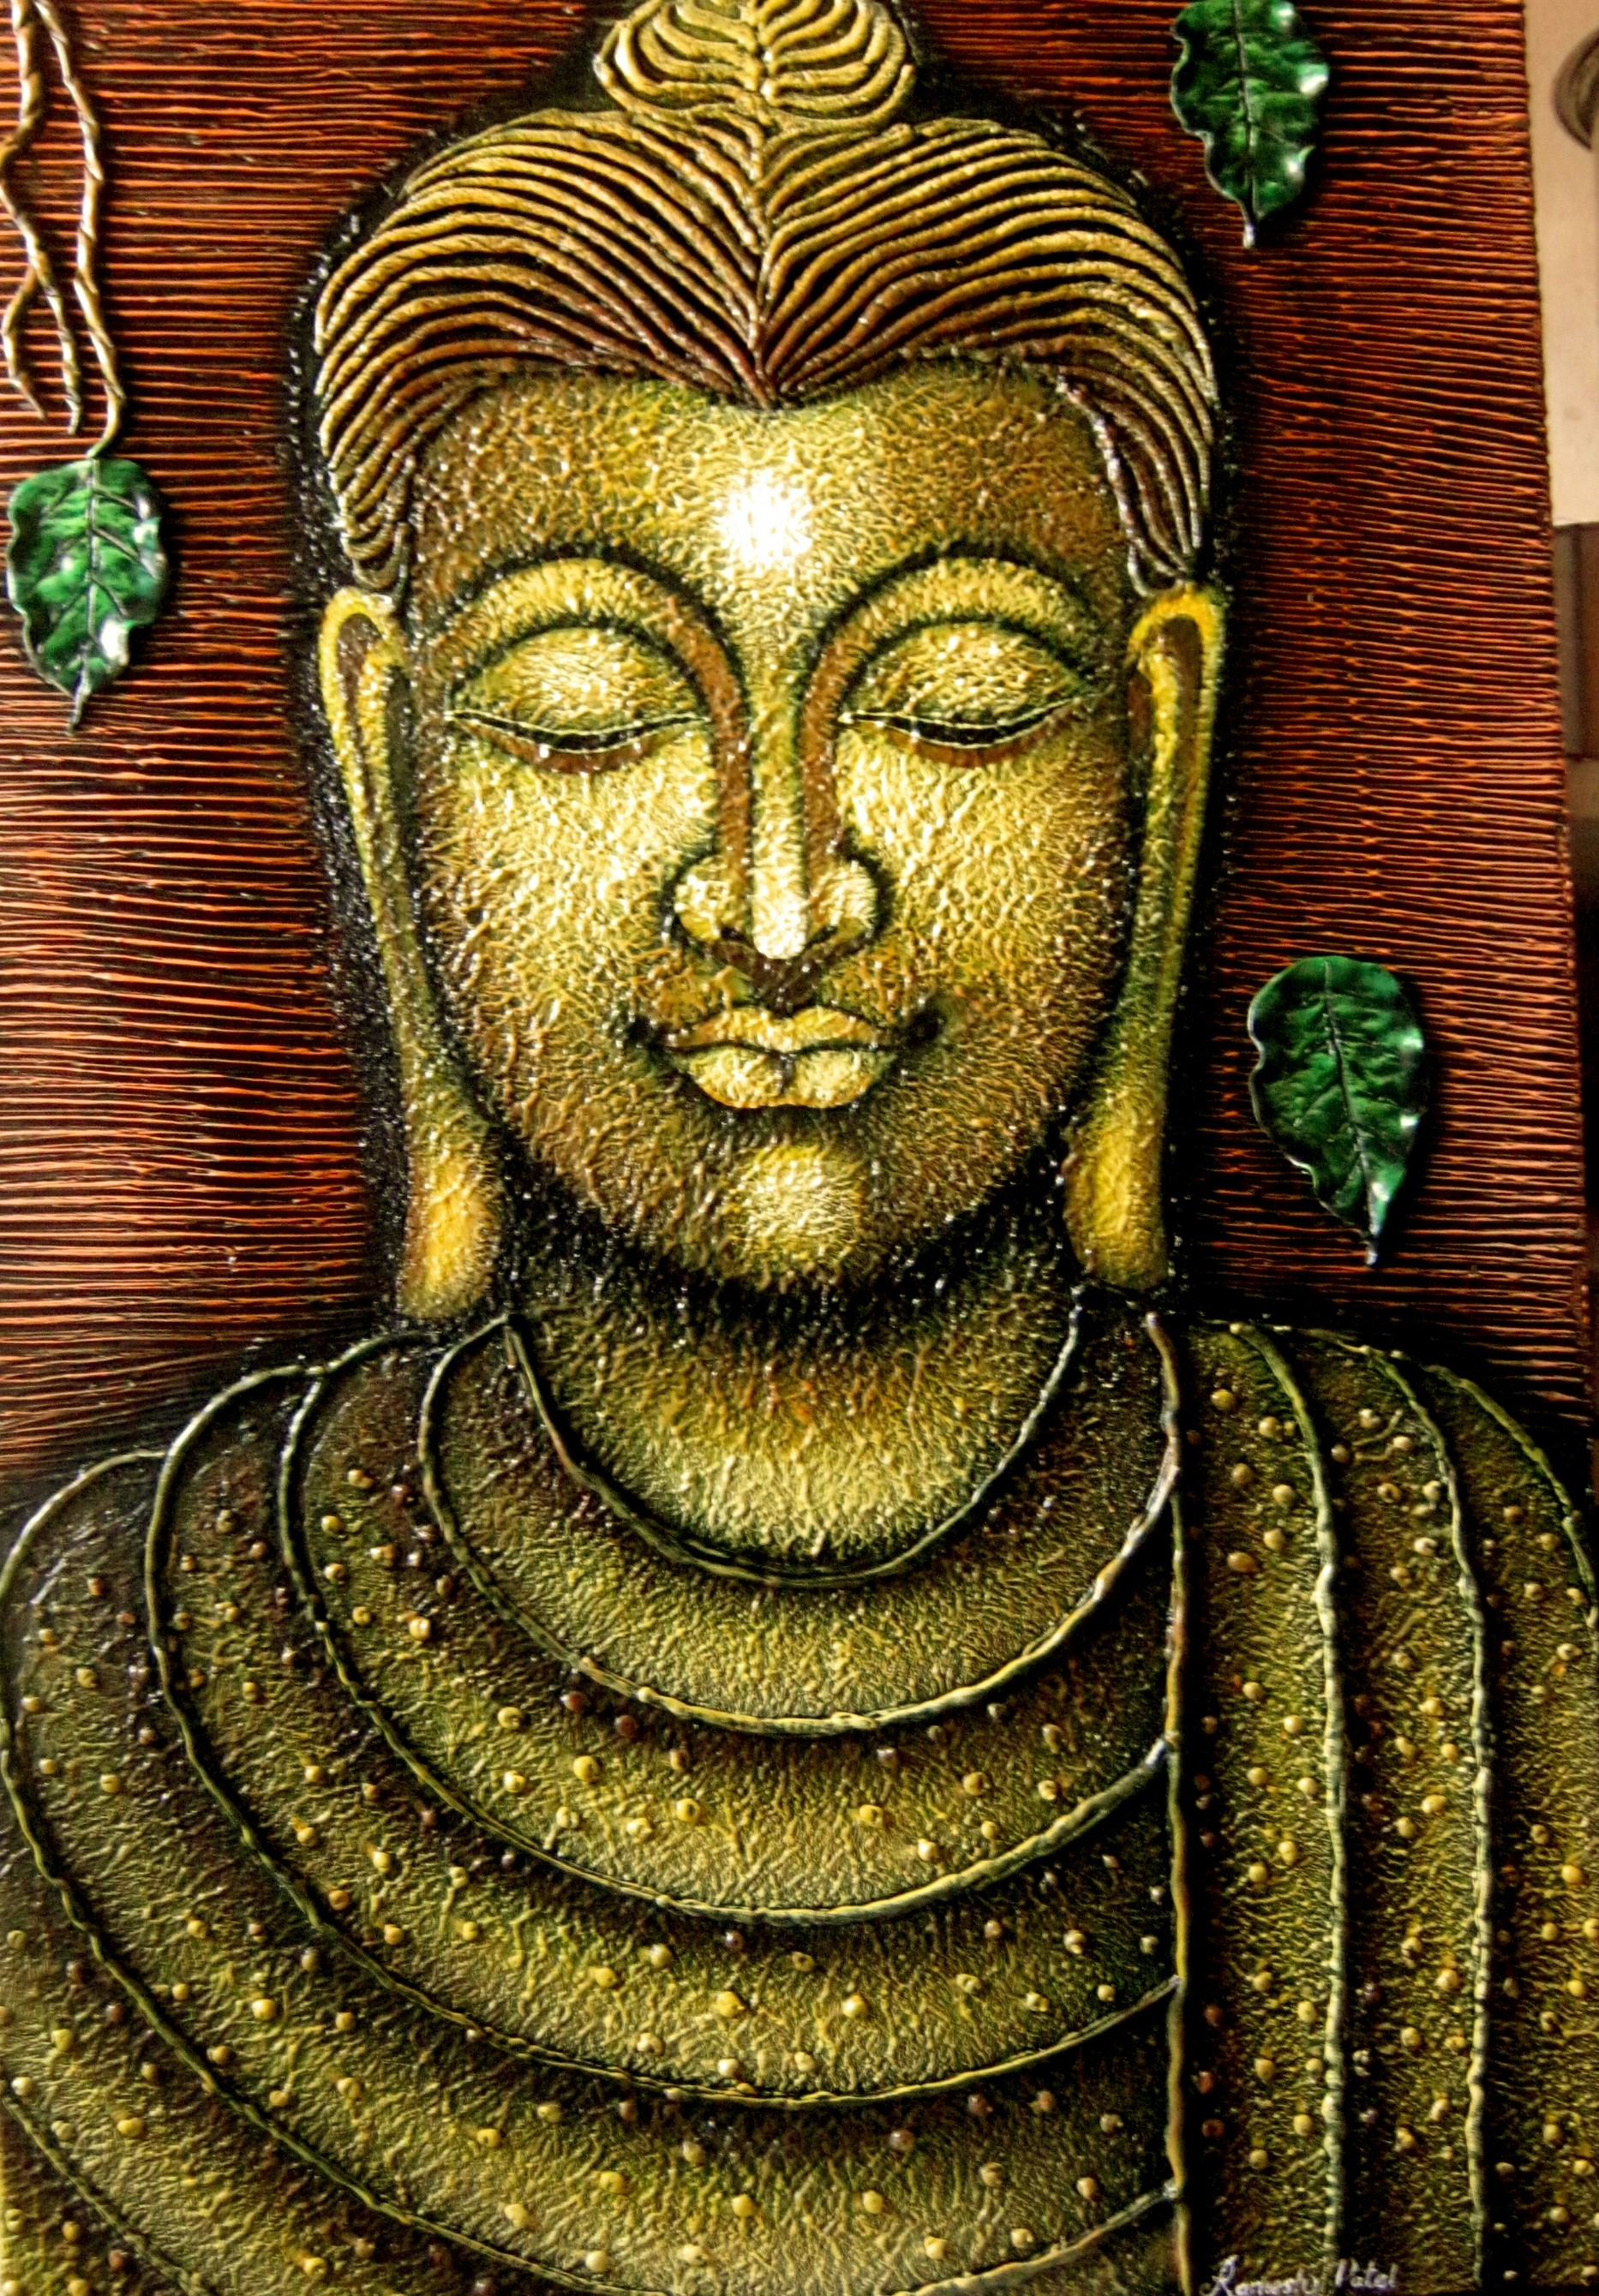 Buy Painting Lord Buddha Painting Artwork No 7594 by ...